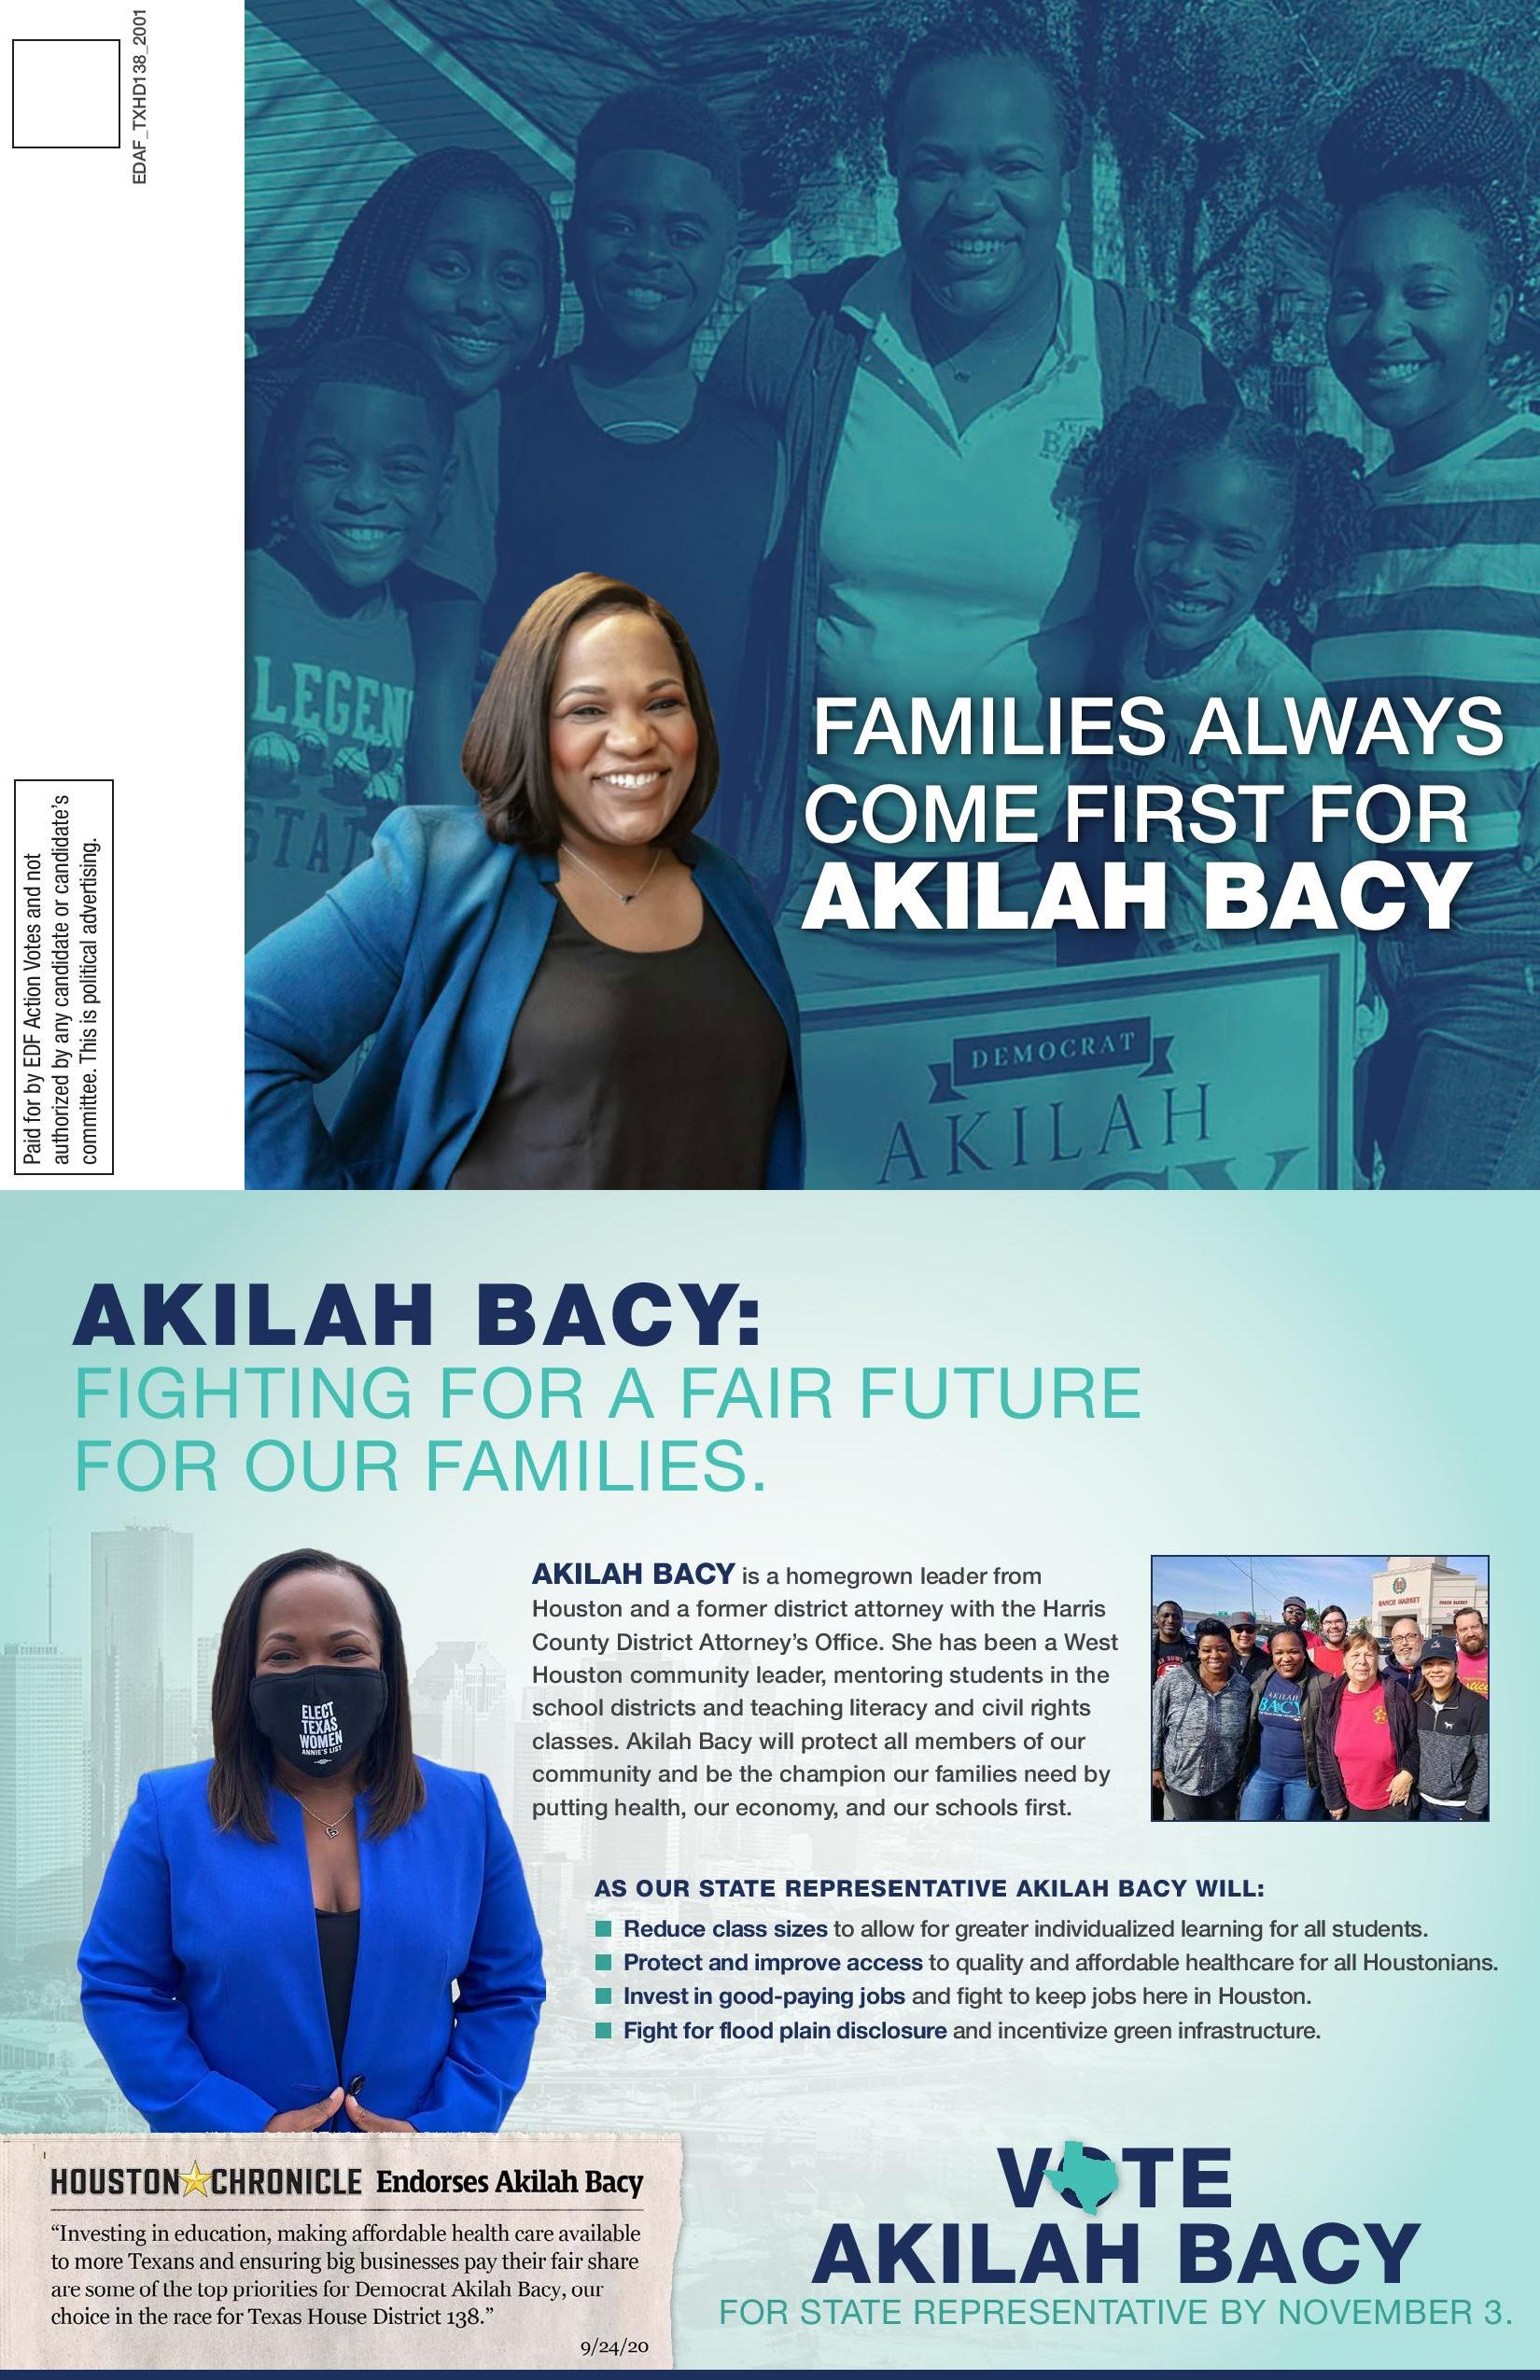 Mail piece for Akilah Bacy